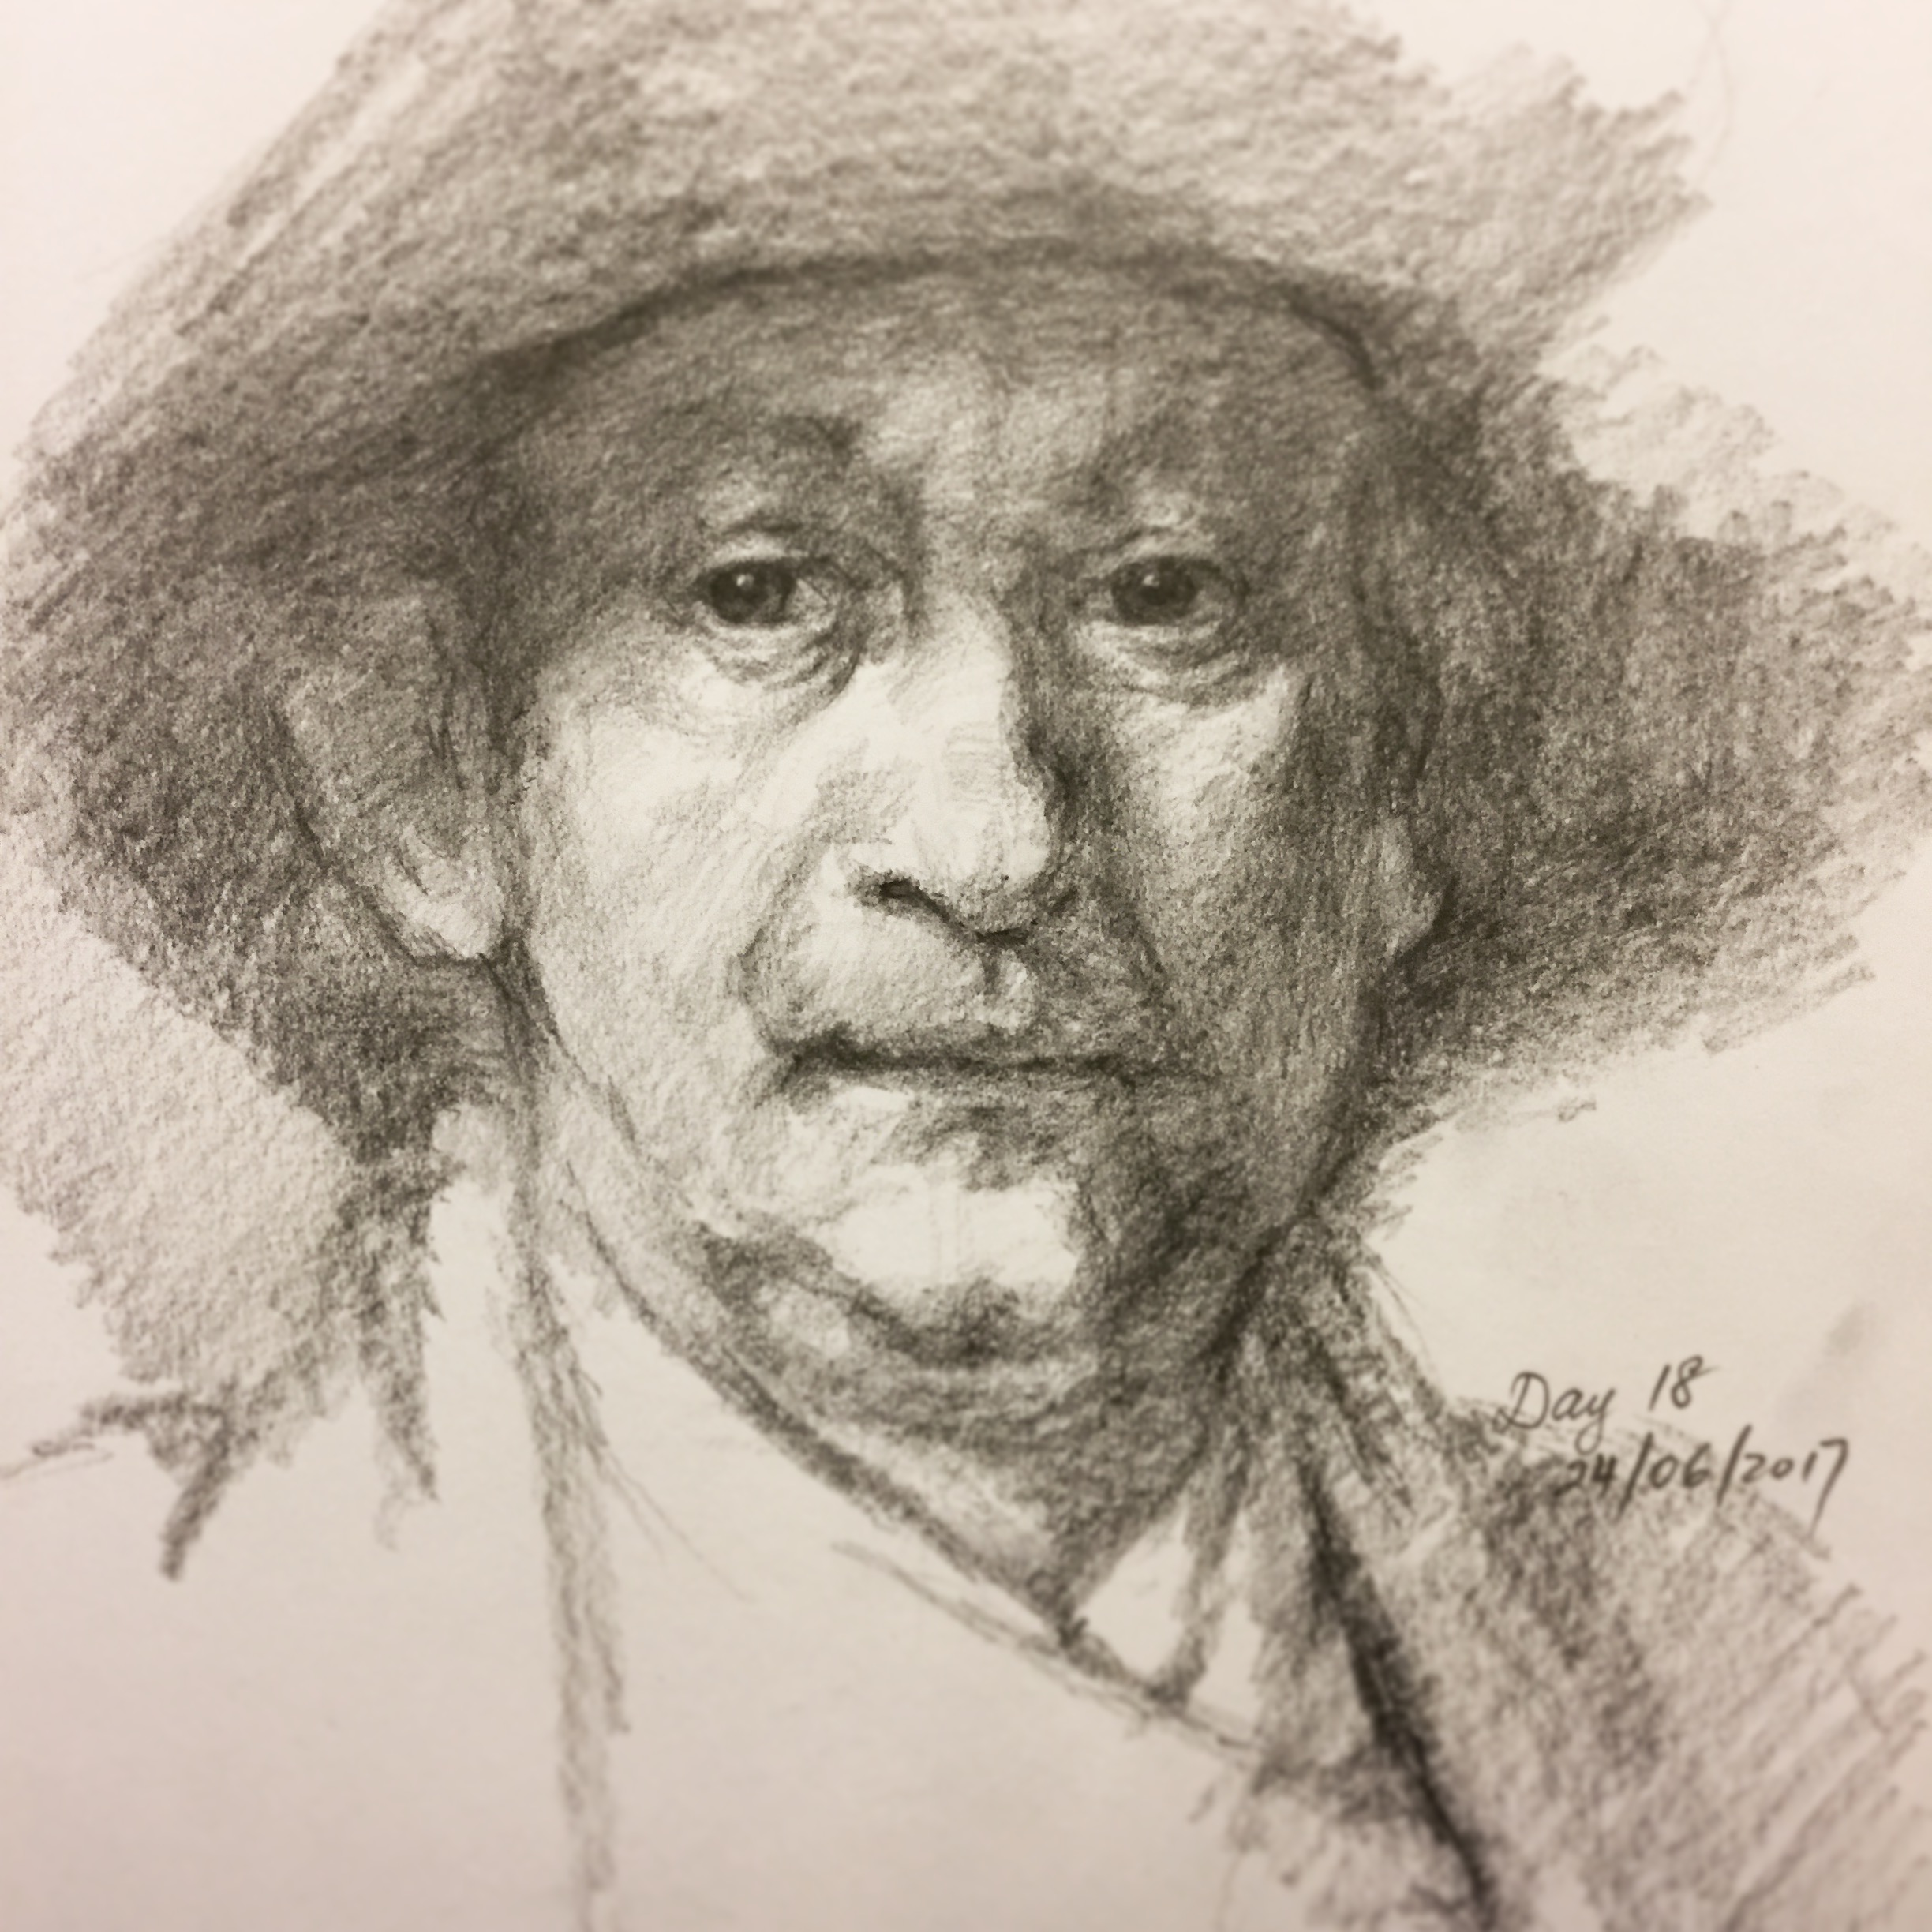 What I learnt from this sketch of Rembrandt was his use of tone treatment. He uses midtones everywhere in the face but the eyes are hauntingly dark. Self-portraits are a very special type of genre when it comes to painters, every time I've done one of myself in front of a mirror I always felt an answering touch on the part of my face that I'm putting onto paper.